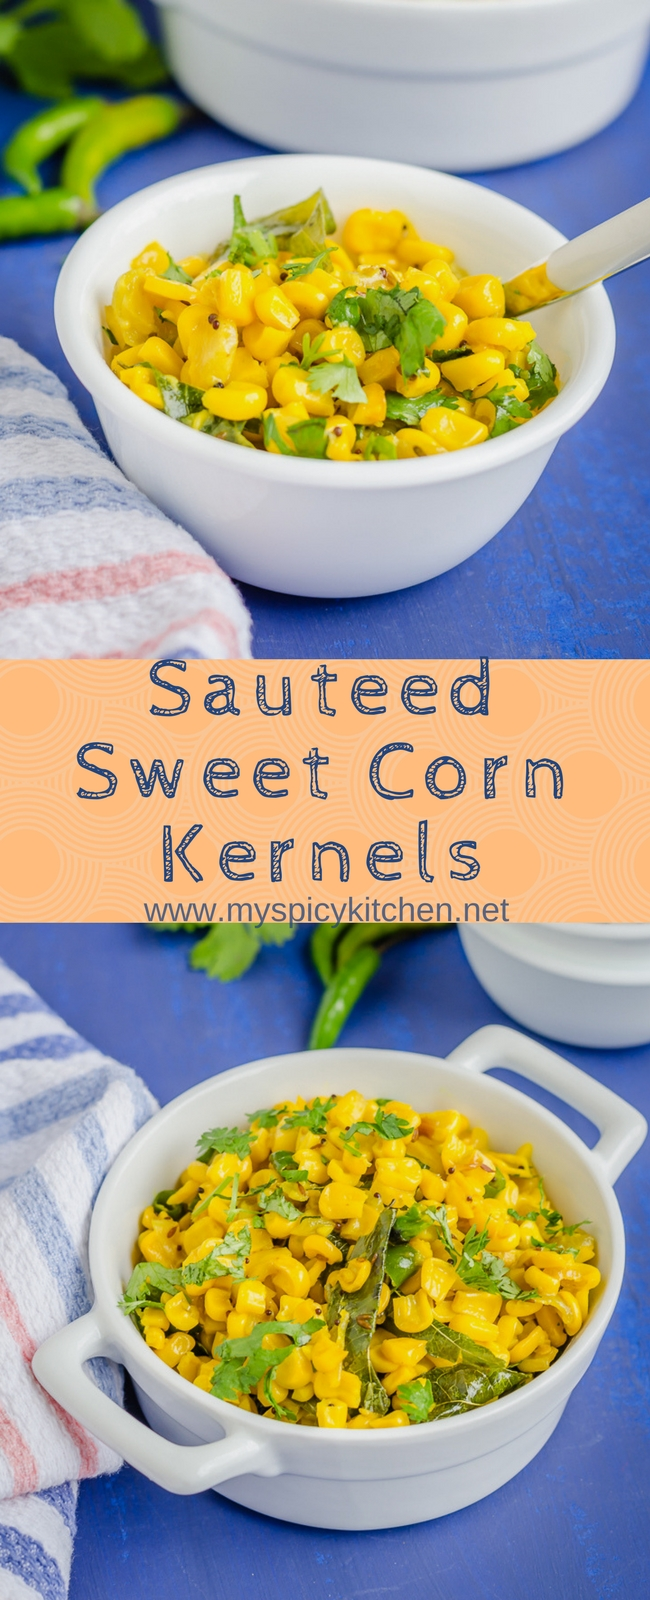 Sweetcorn kernels sauteed with green chilies and garlic.  #Snack #Breakfast #MySpicyKitchen #SweetcornRecipe